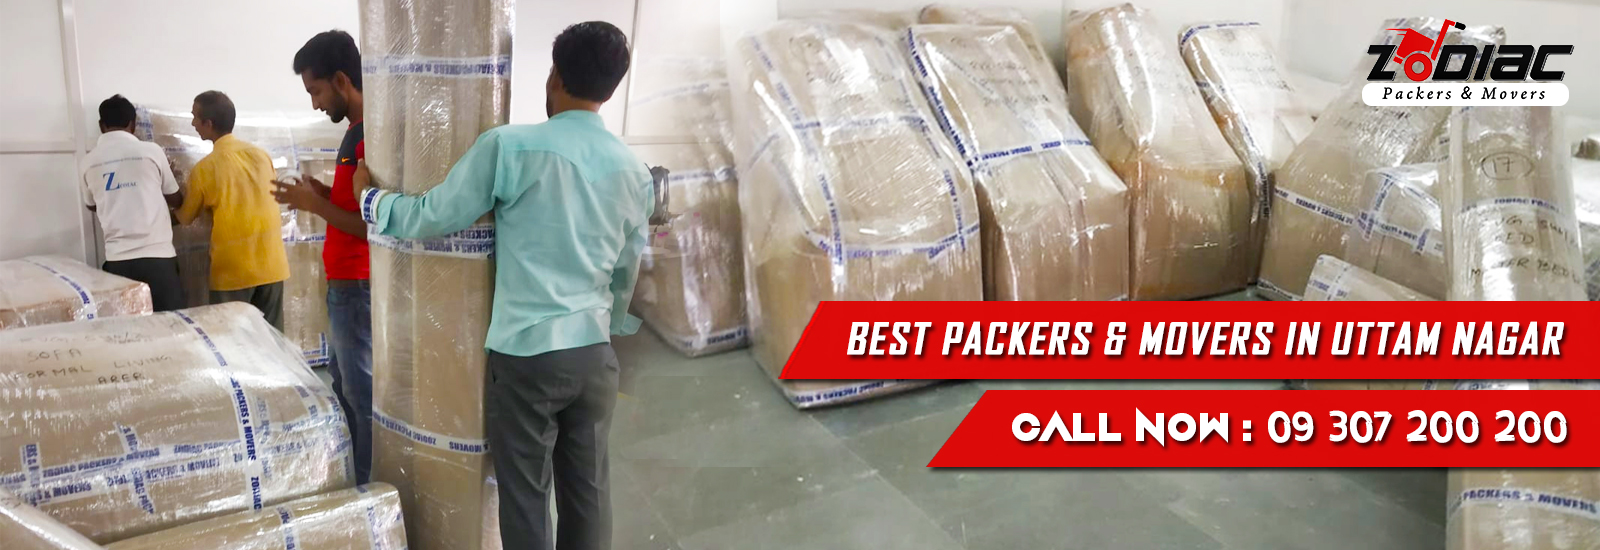 Packers and Movers in Uttam Nagar